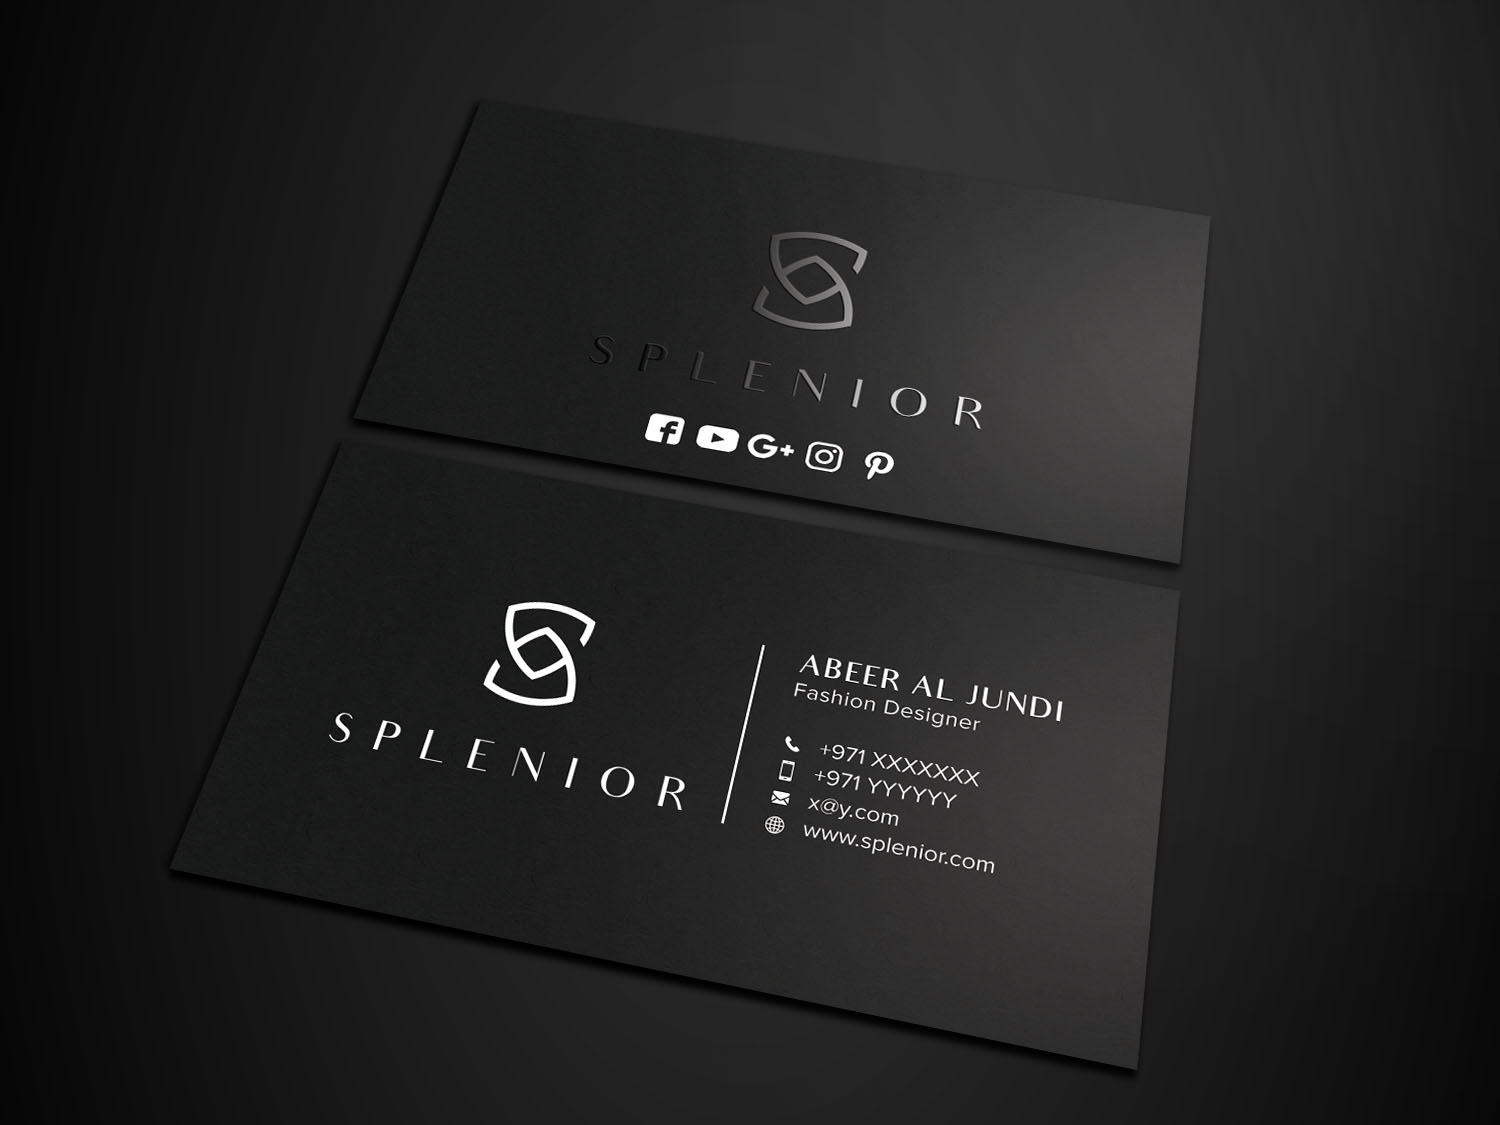 Modern Feminine Fashion Business Card Design For A Company By Avanger 000 Design 17428305